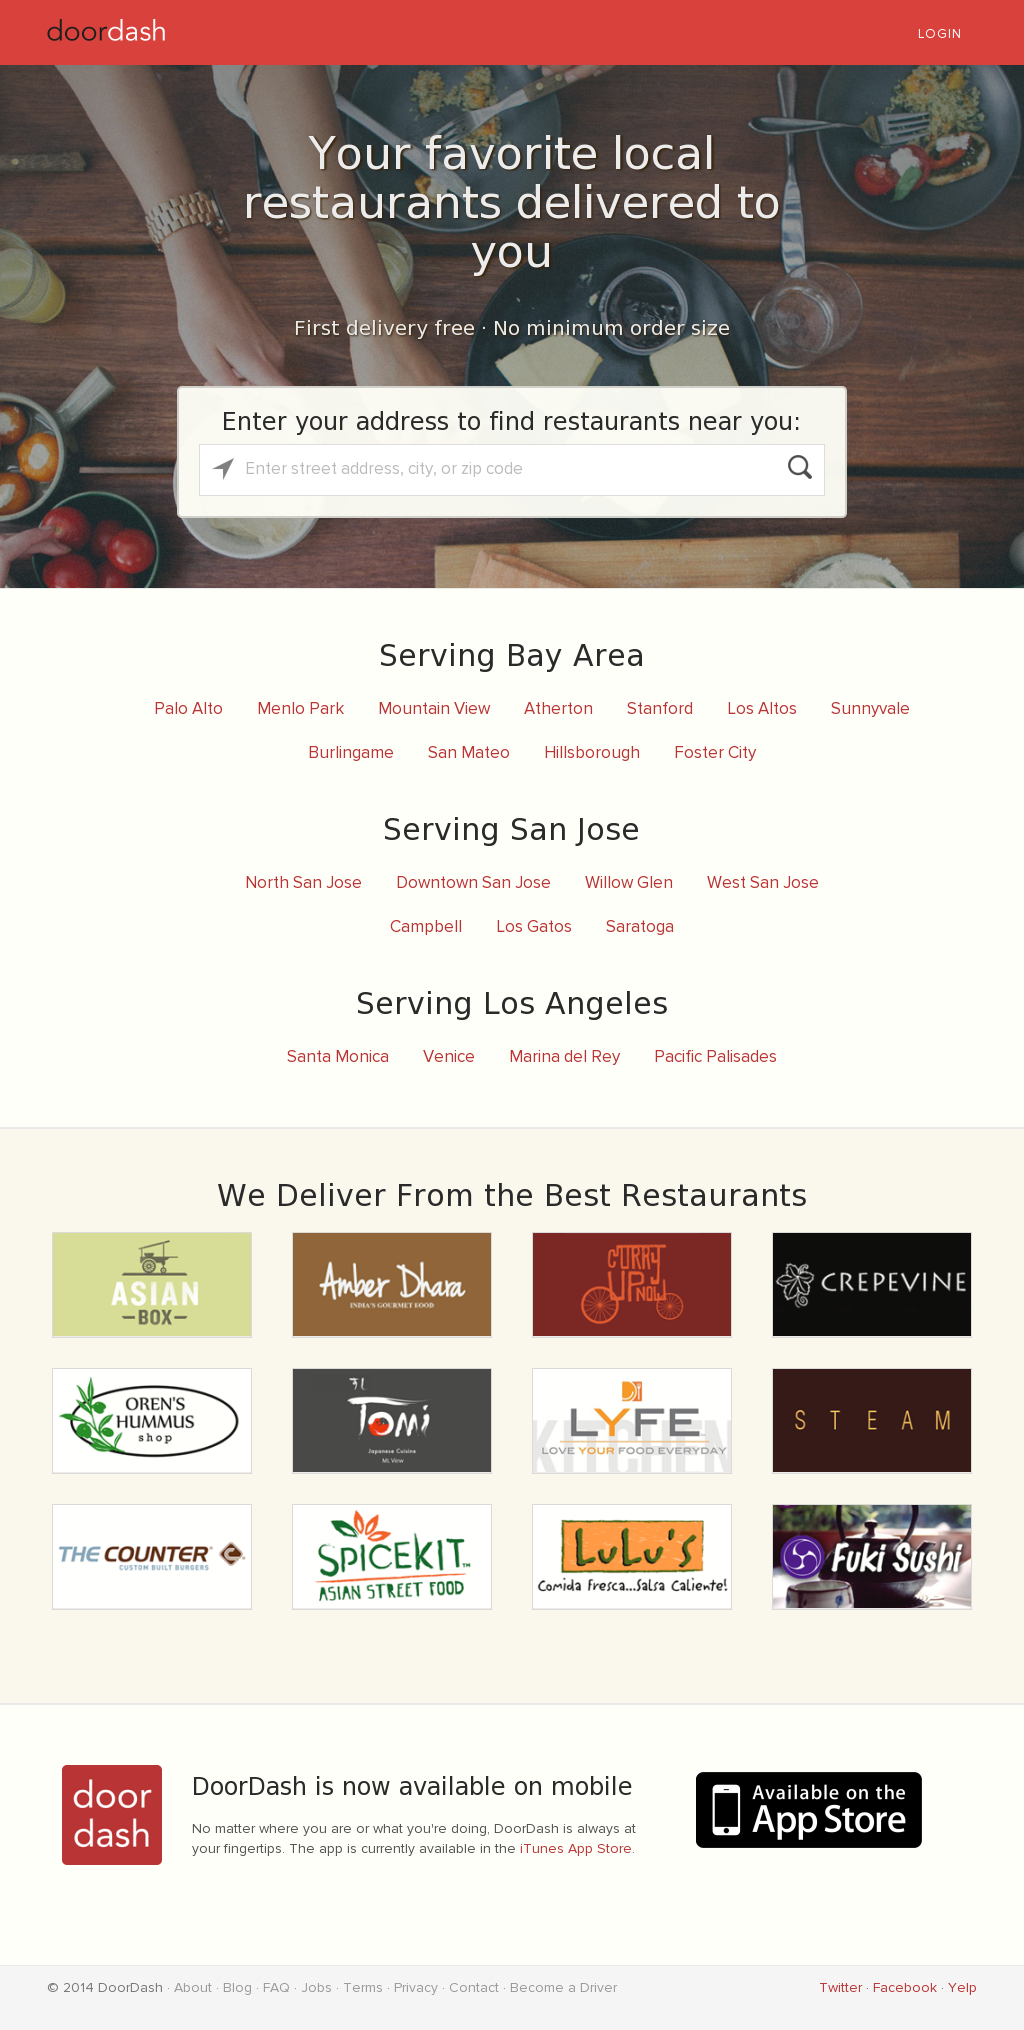 DoorDash Competitors, Revenue and Employees - Owler Company Profile